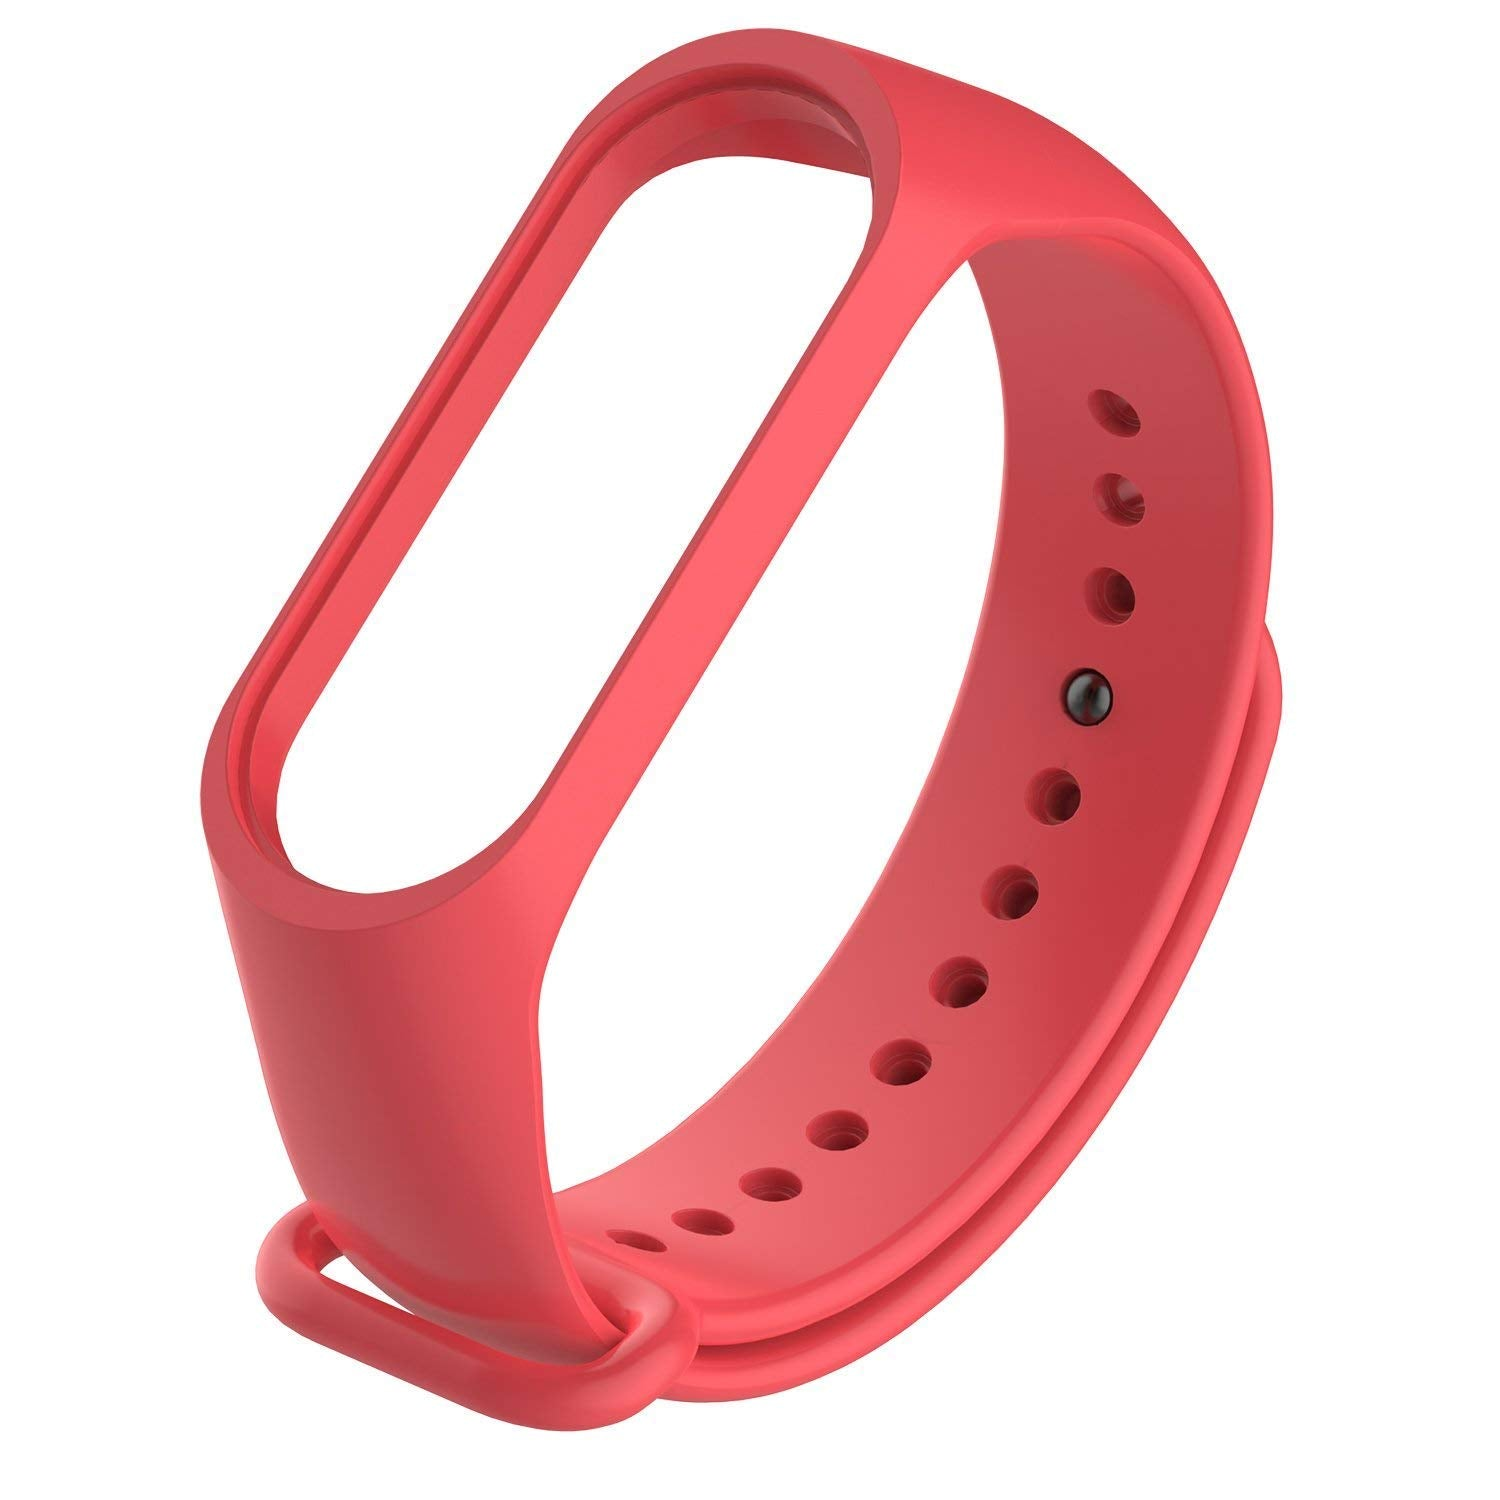 Silicon Band Strap for M3 Band (Device not Included)